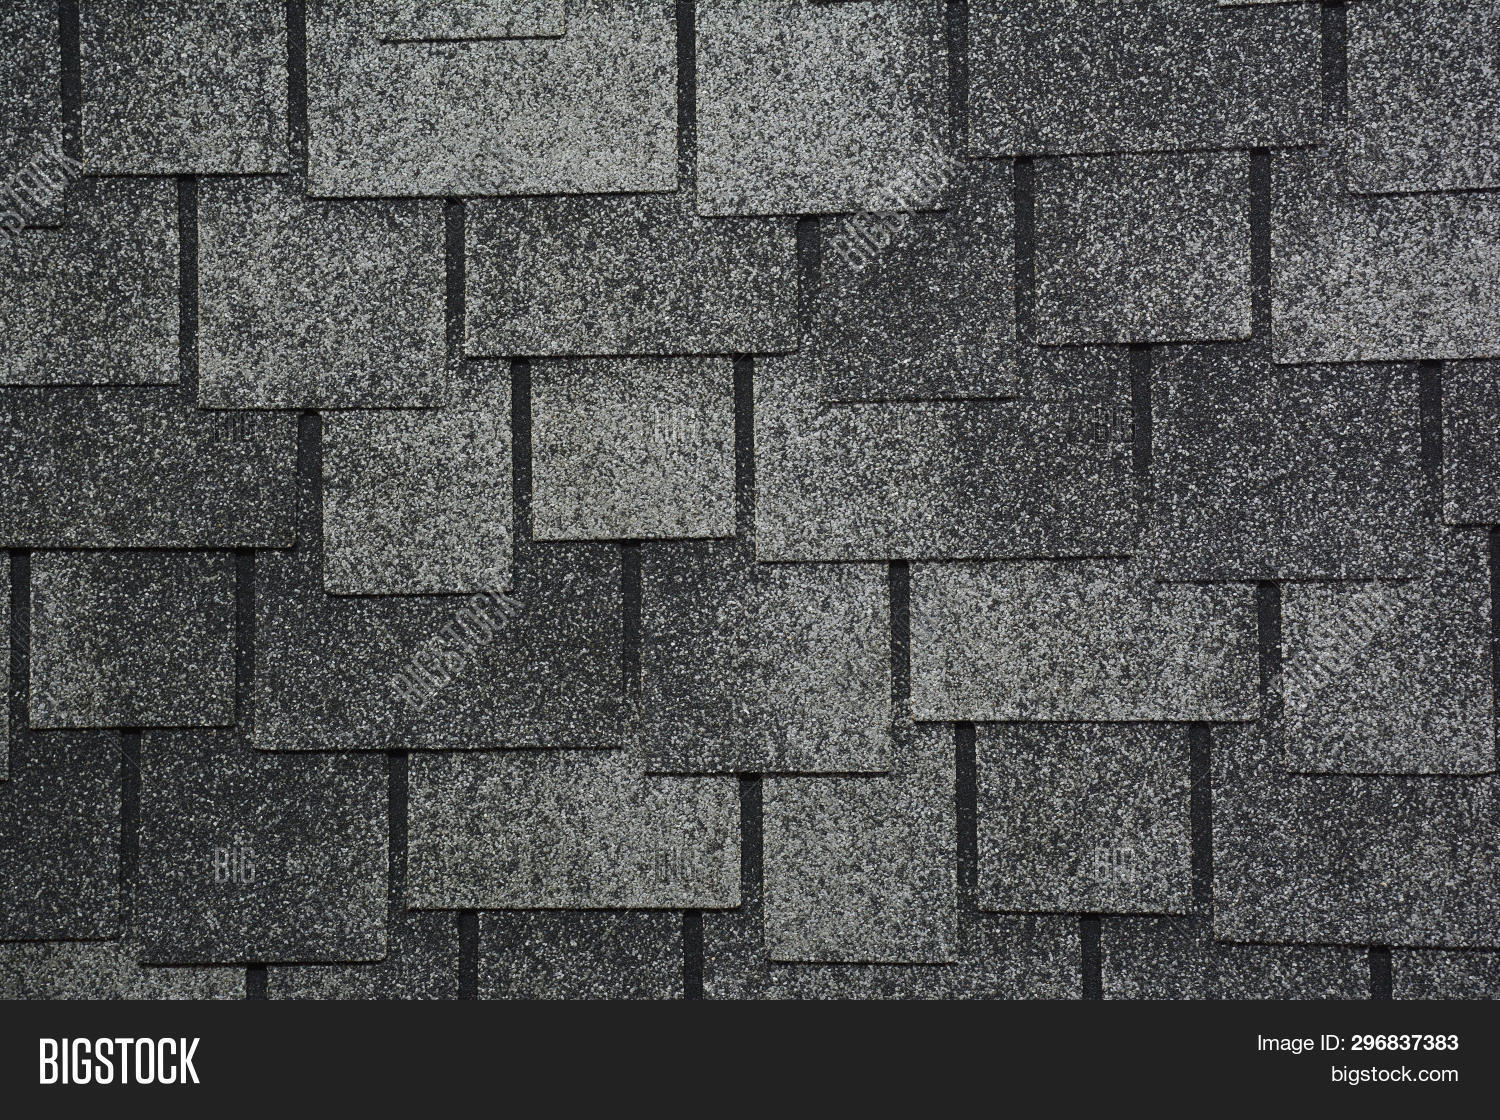 asphalt,background,building,construction,corner,gray,house,install,installation,insulation,material,pattern,perspective,photo,roof,roofing,rooftop,shingles,surface,texture,textured,tiles,top,waterproof